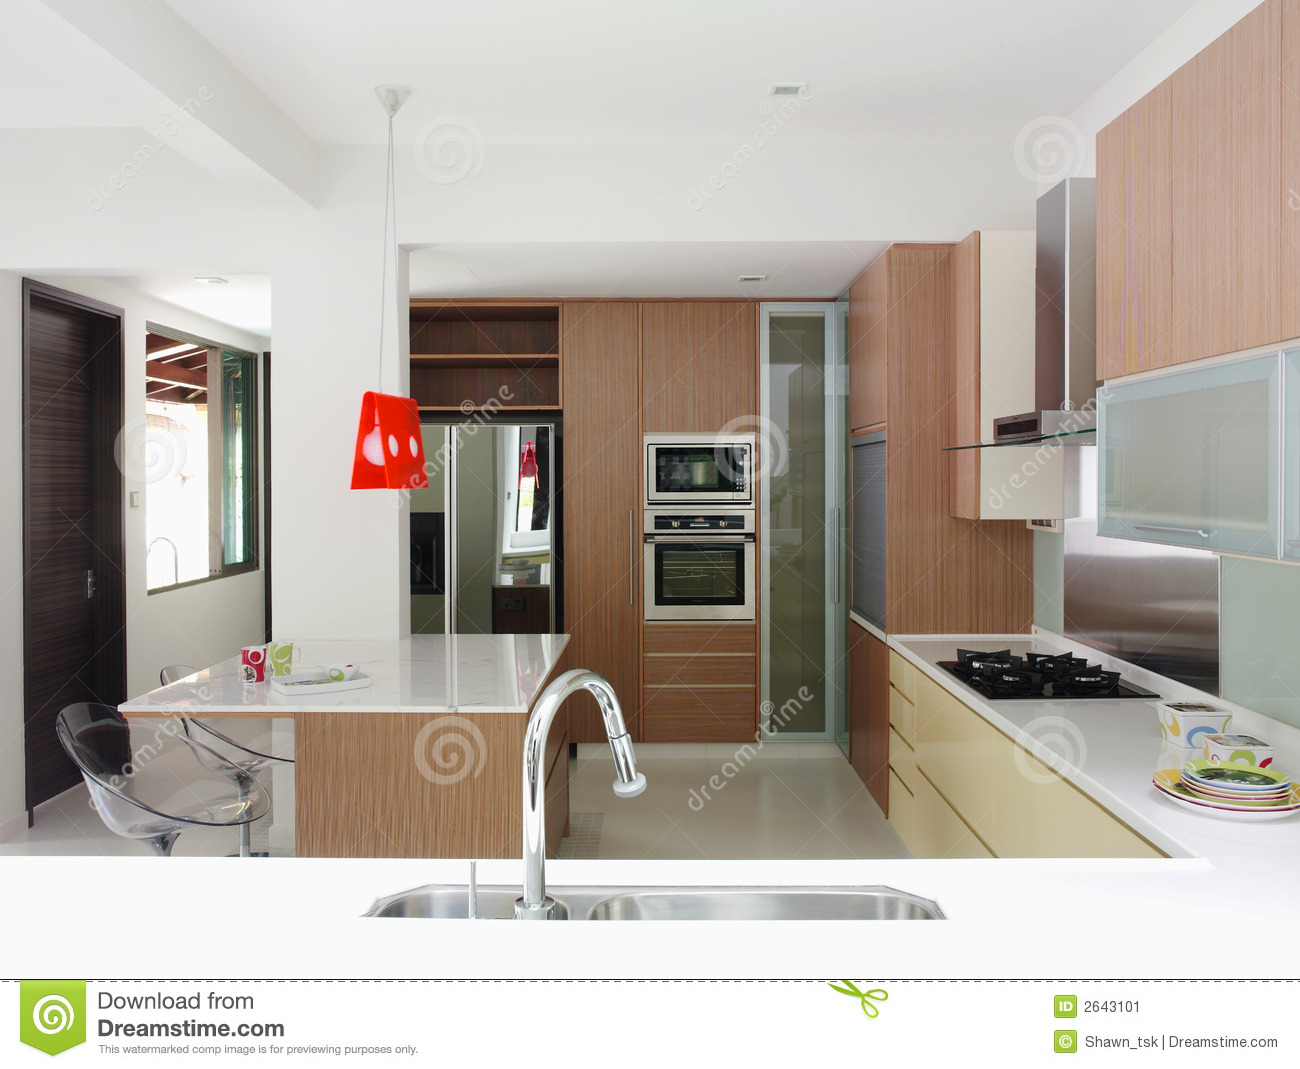 Interior Design Kitchen Stock Image Image 2643101